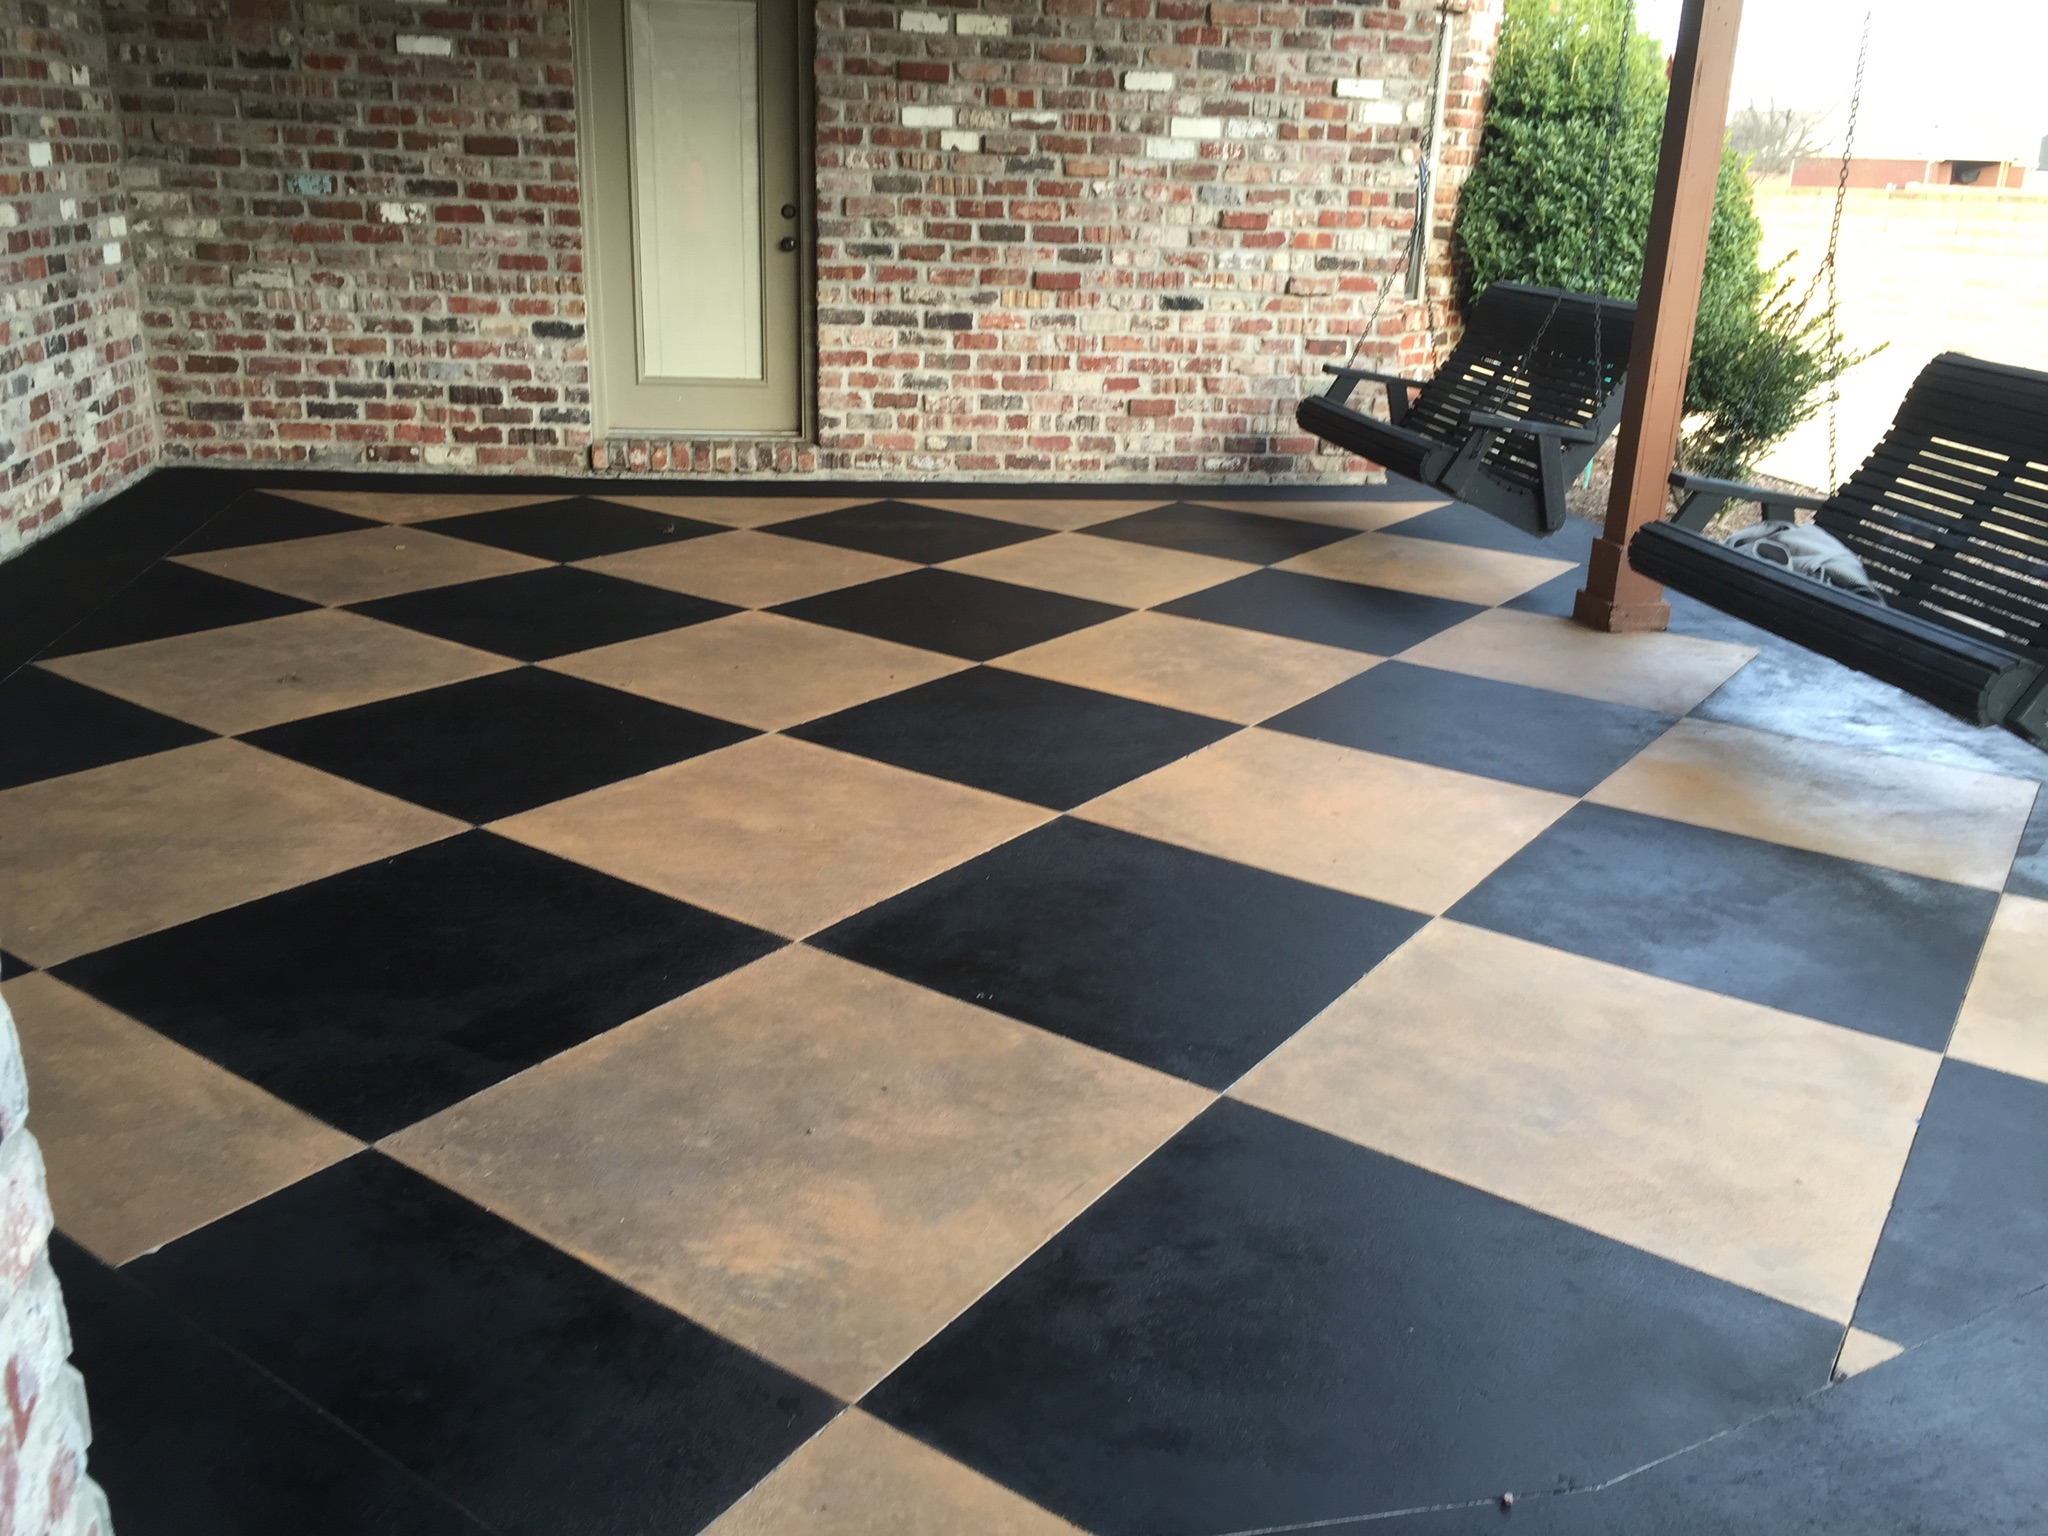 Stamped patio with black and white squares